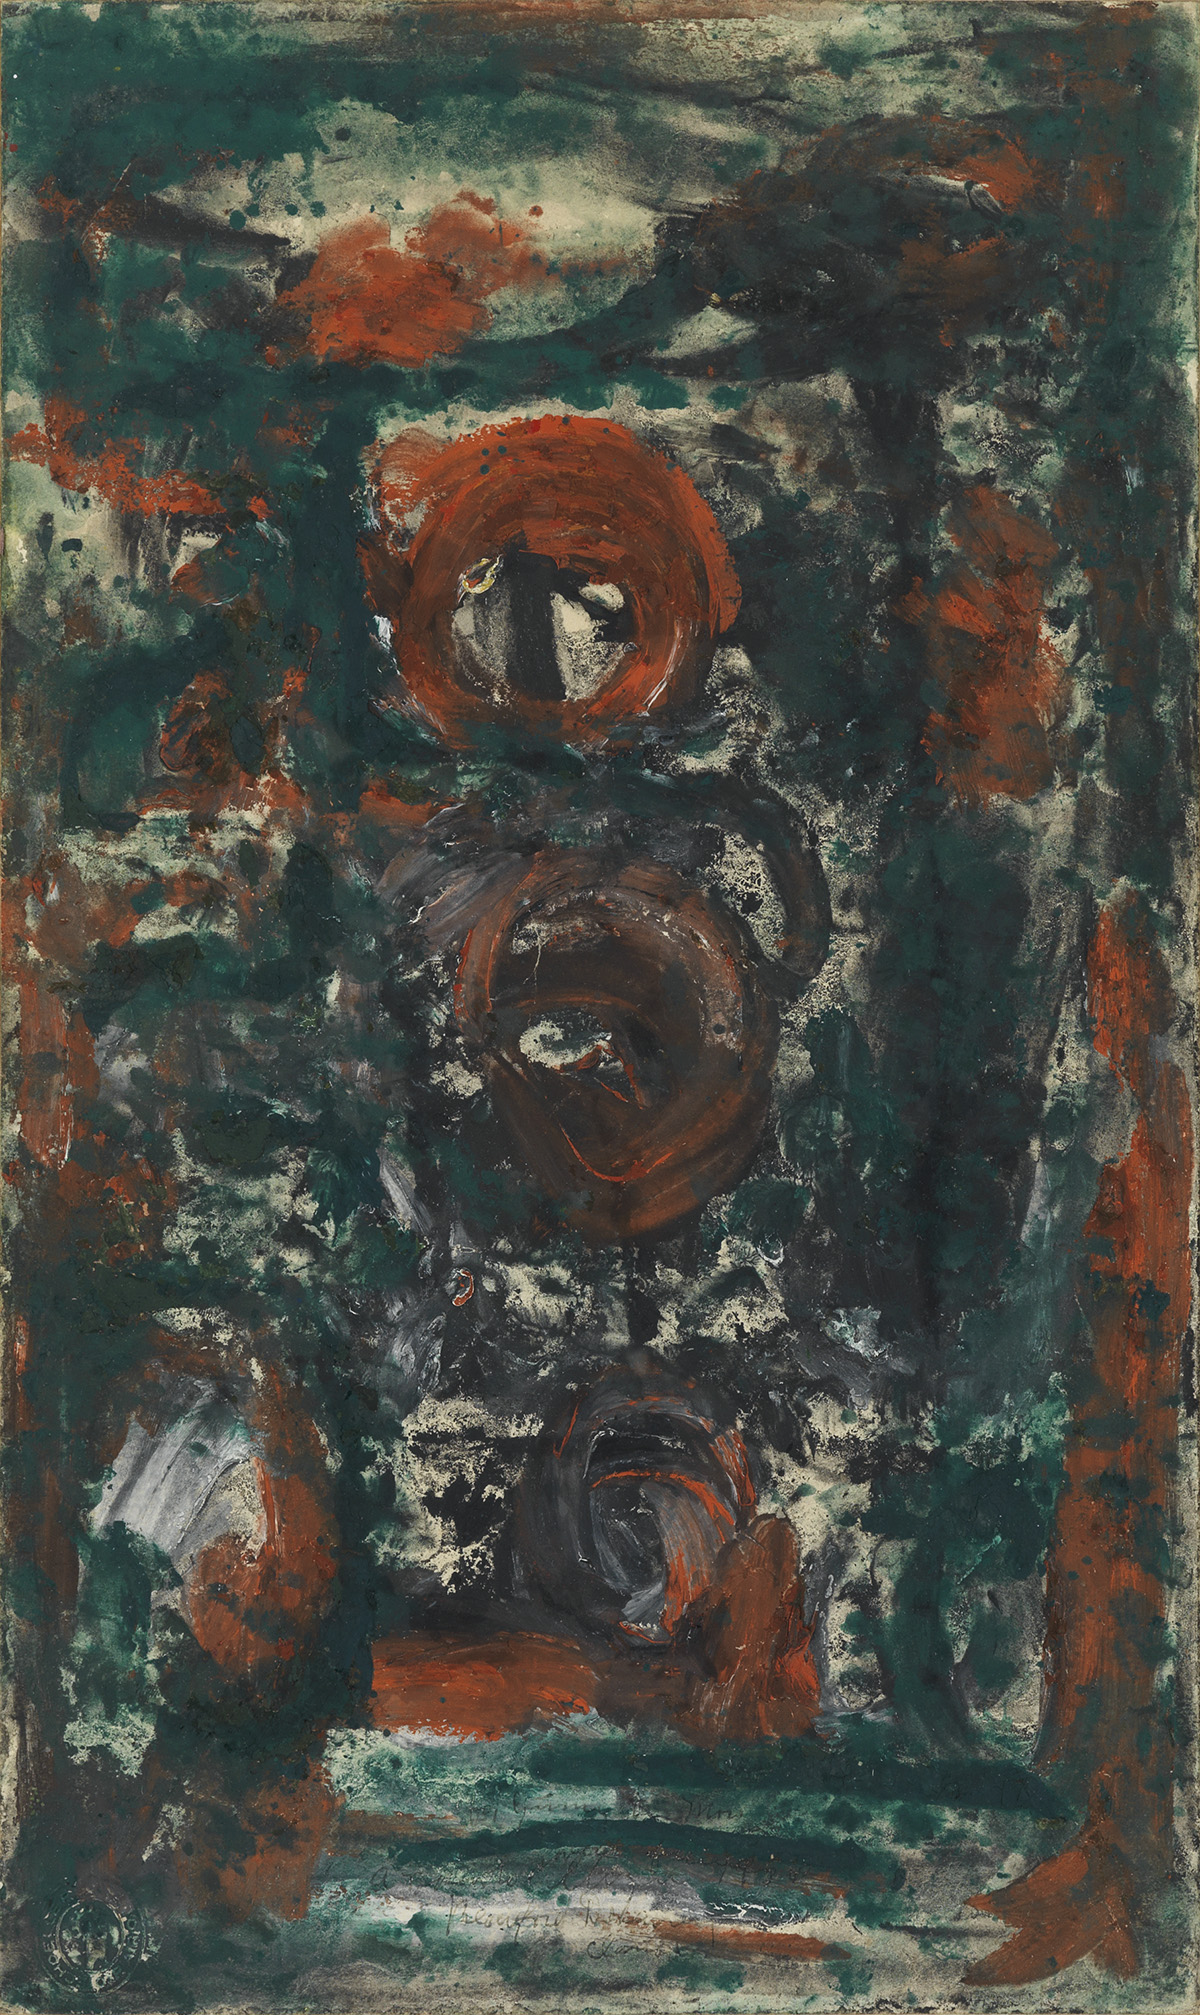 BEAUFORD DELANEY (1901 - 1979) Untitled (Composition in Green, Red and Black).